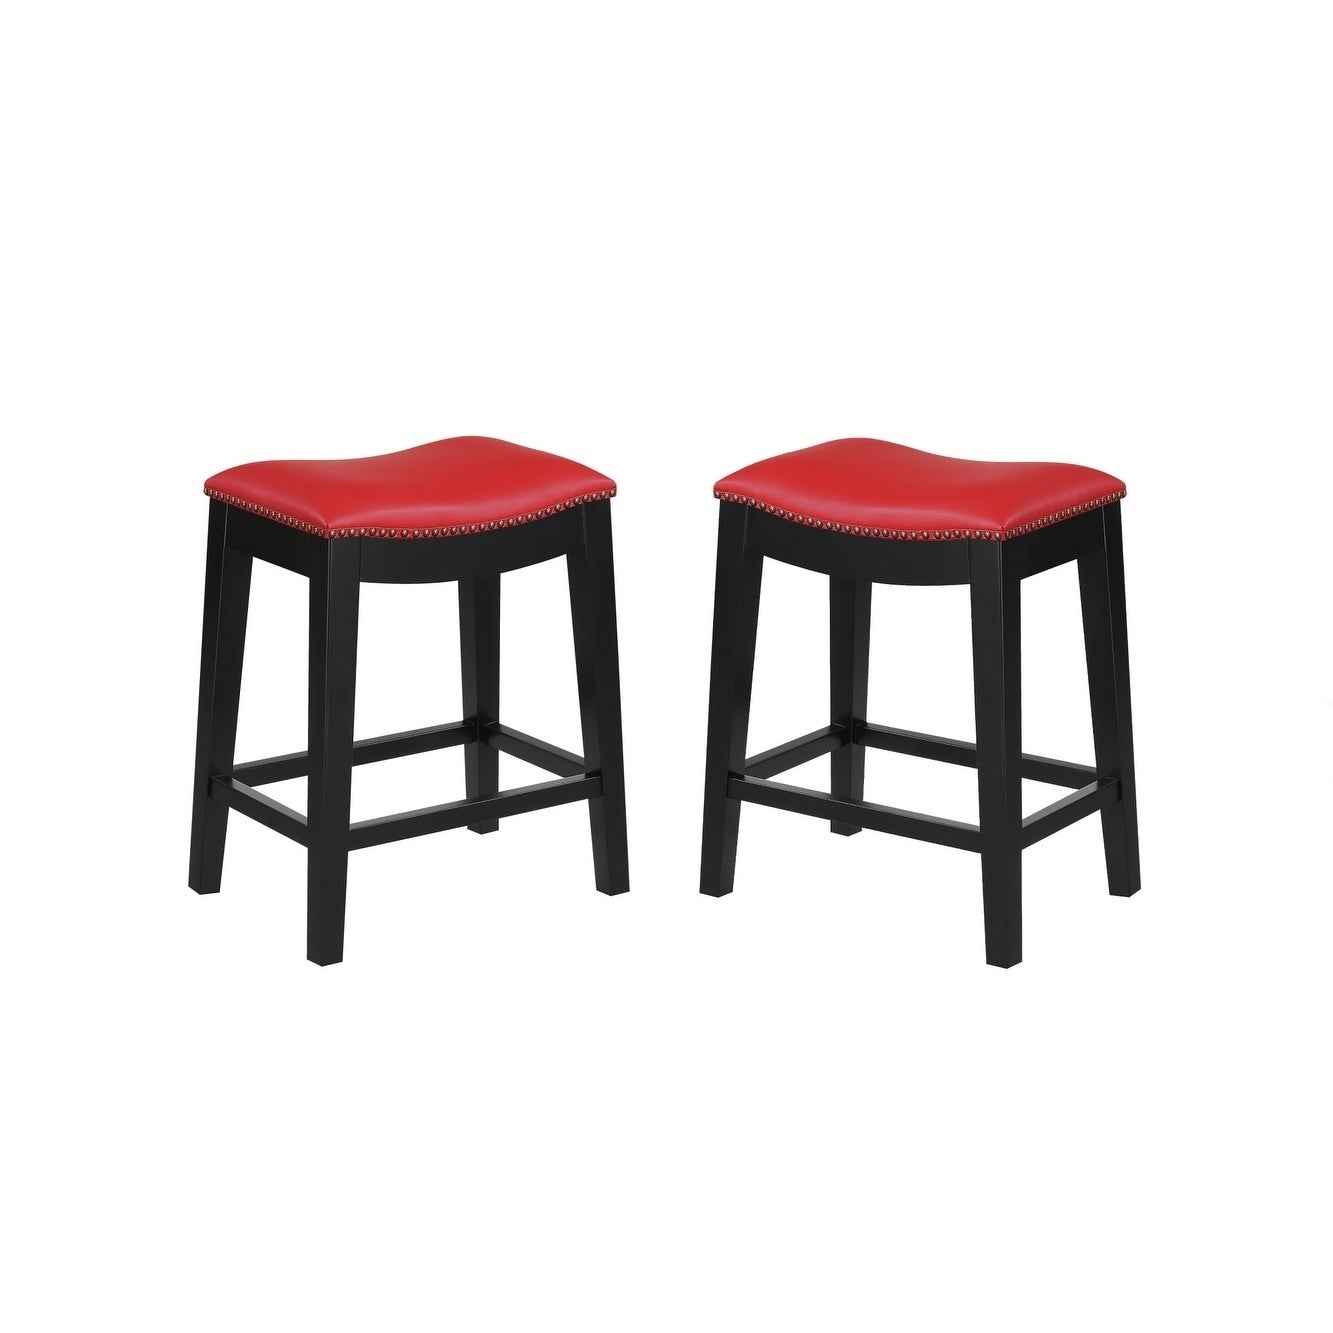 Shop emerald home briar traditional red 24 bar stool set of 2 free shipping today overstock com 20351585